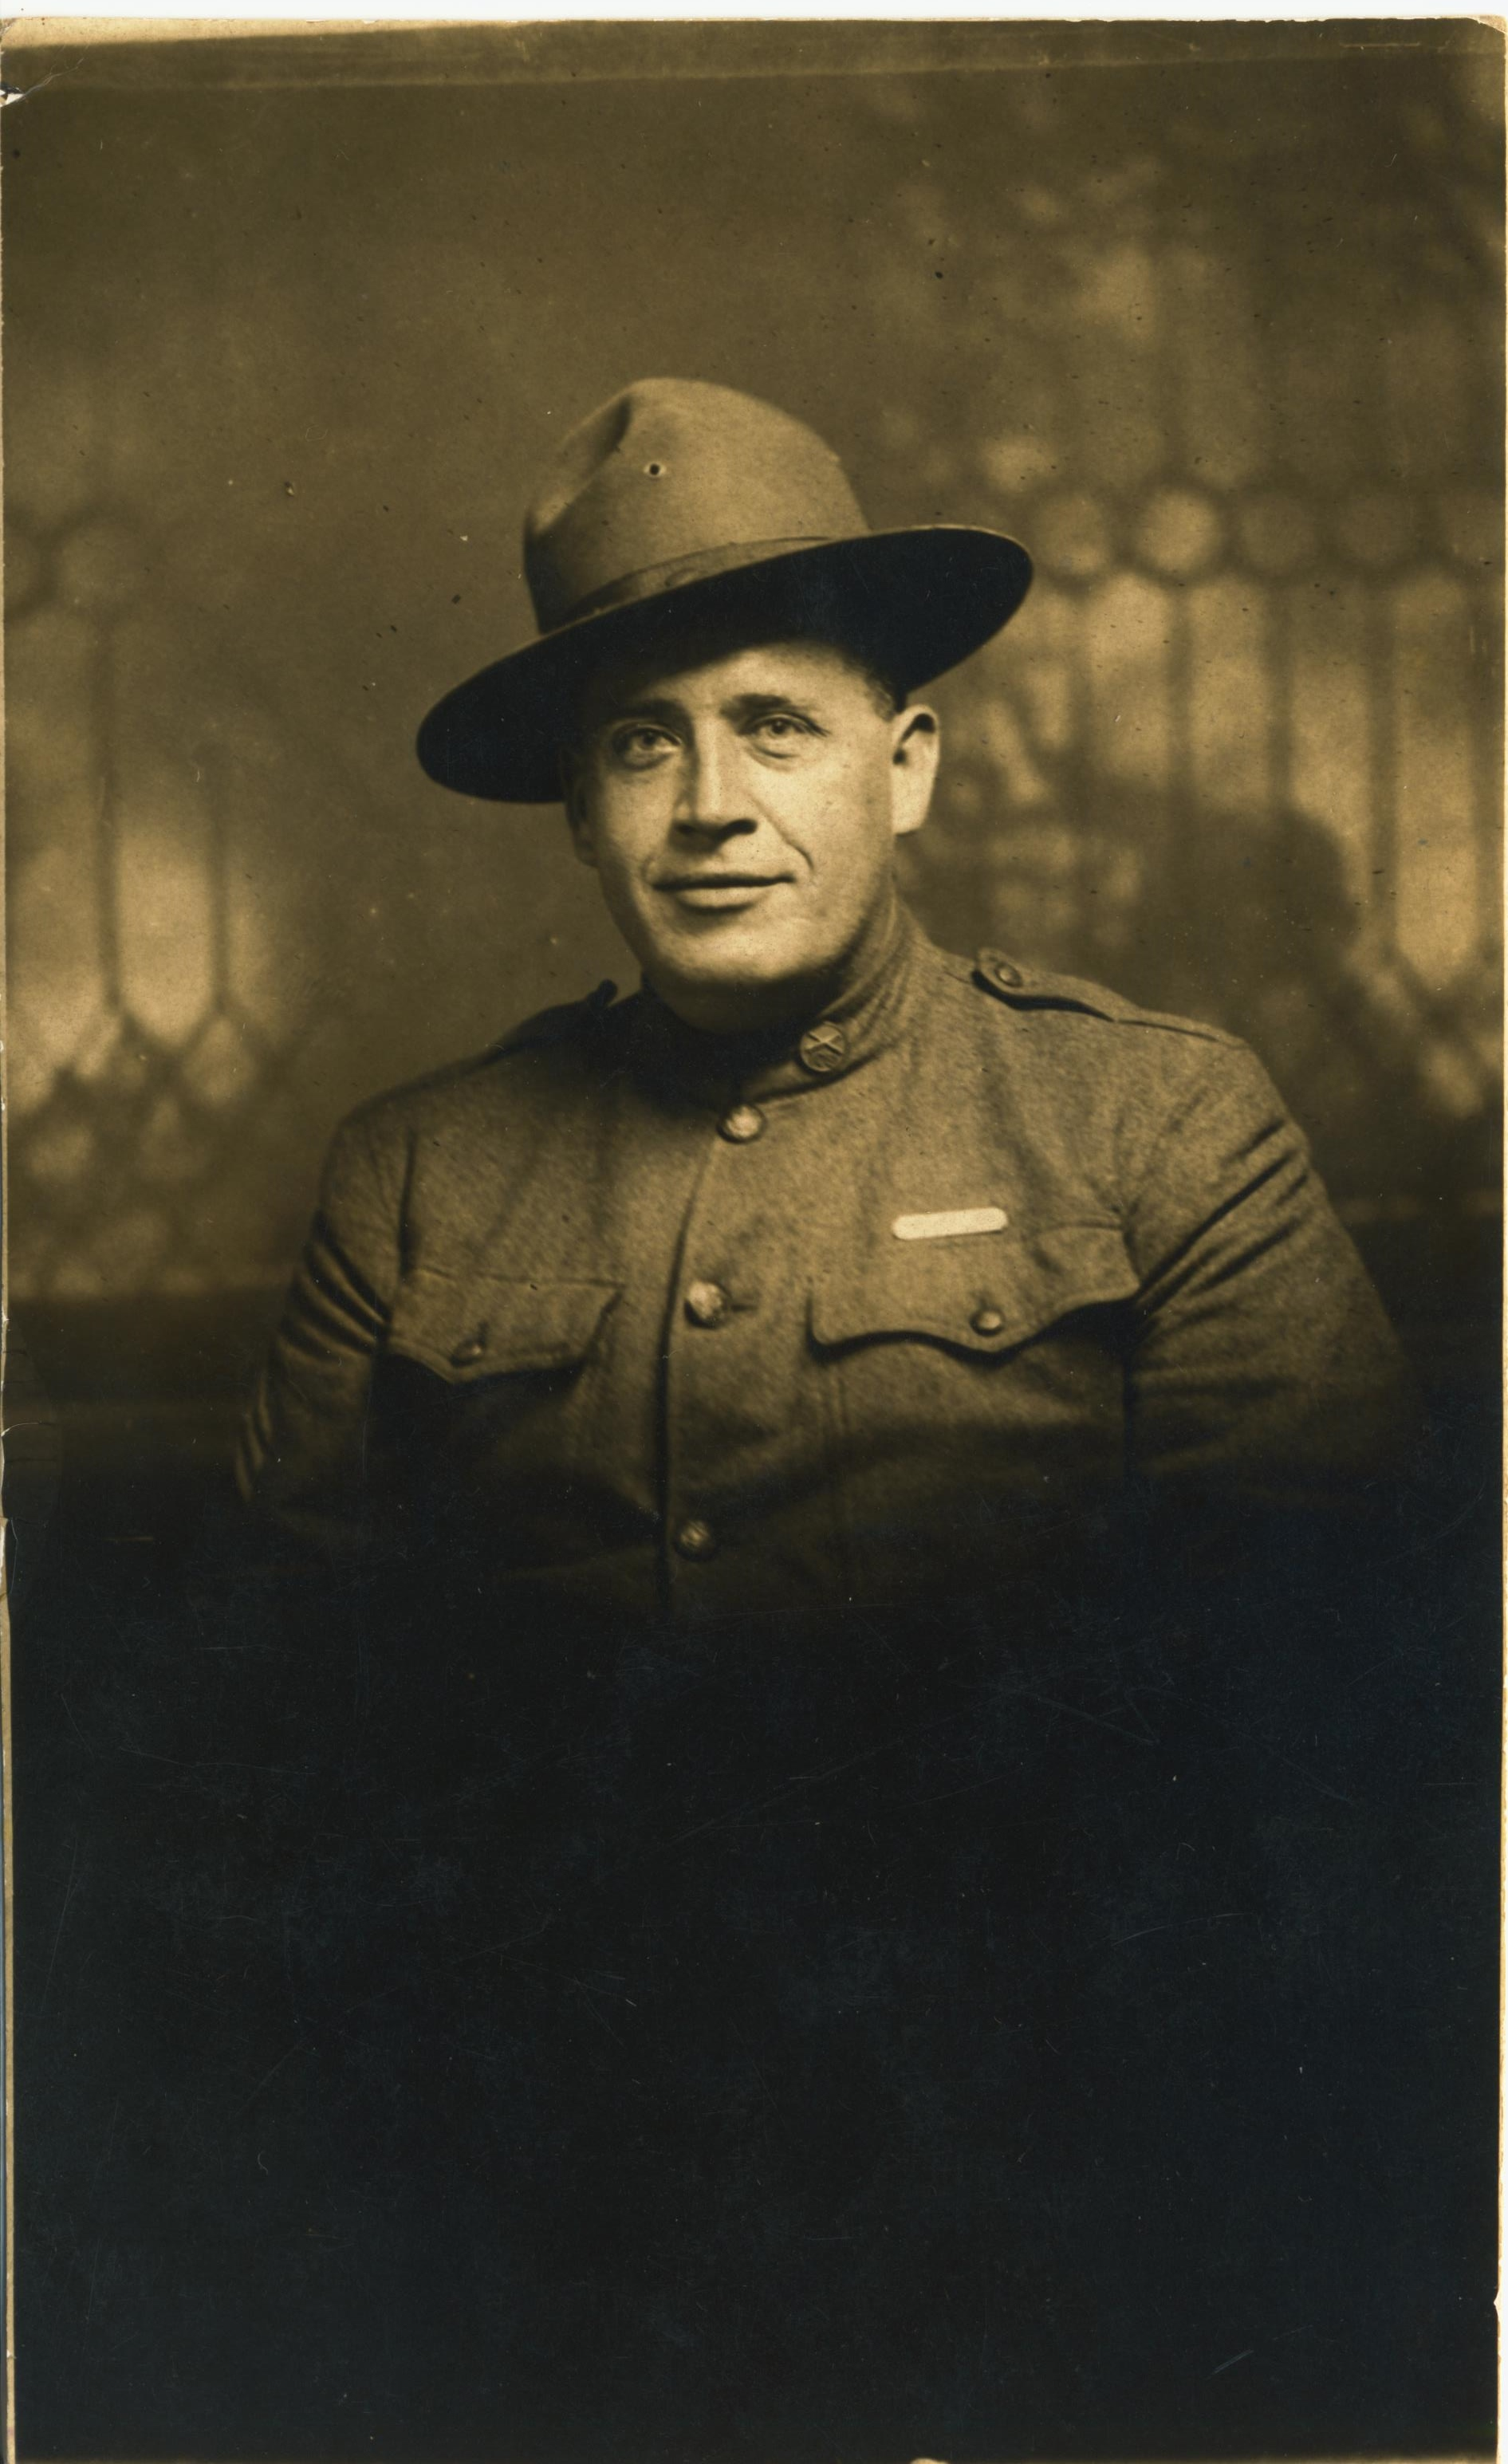 Mess Sargeant Rube A Tart 4th Co CAC Fort Greble RI His mother was sister to Nellie Sears Suedaker